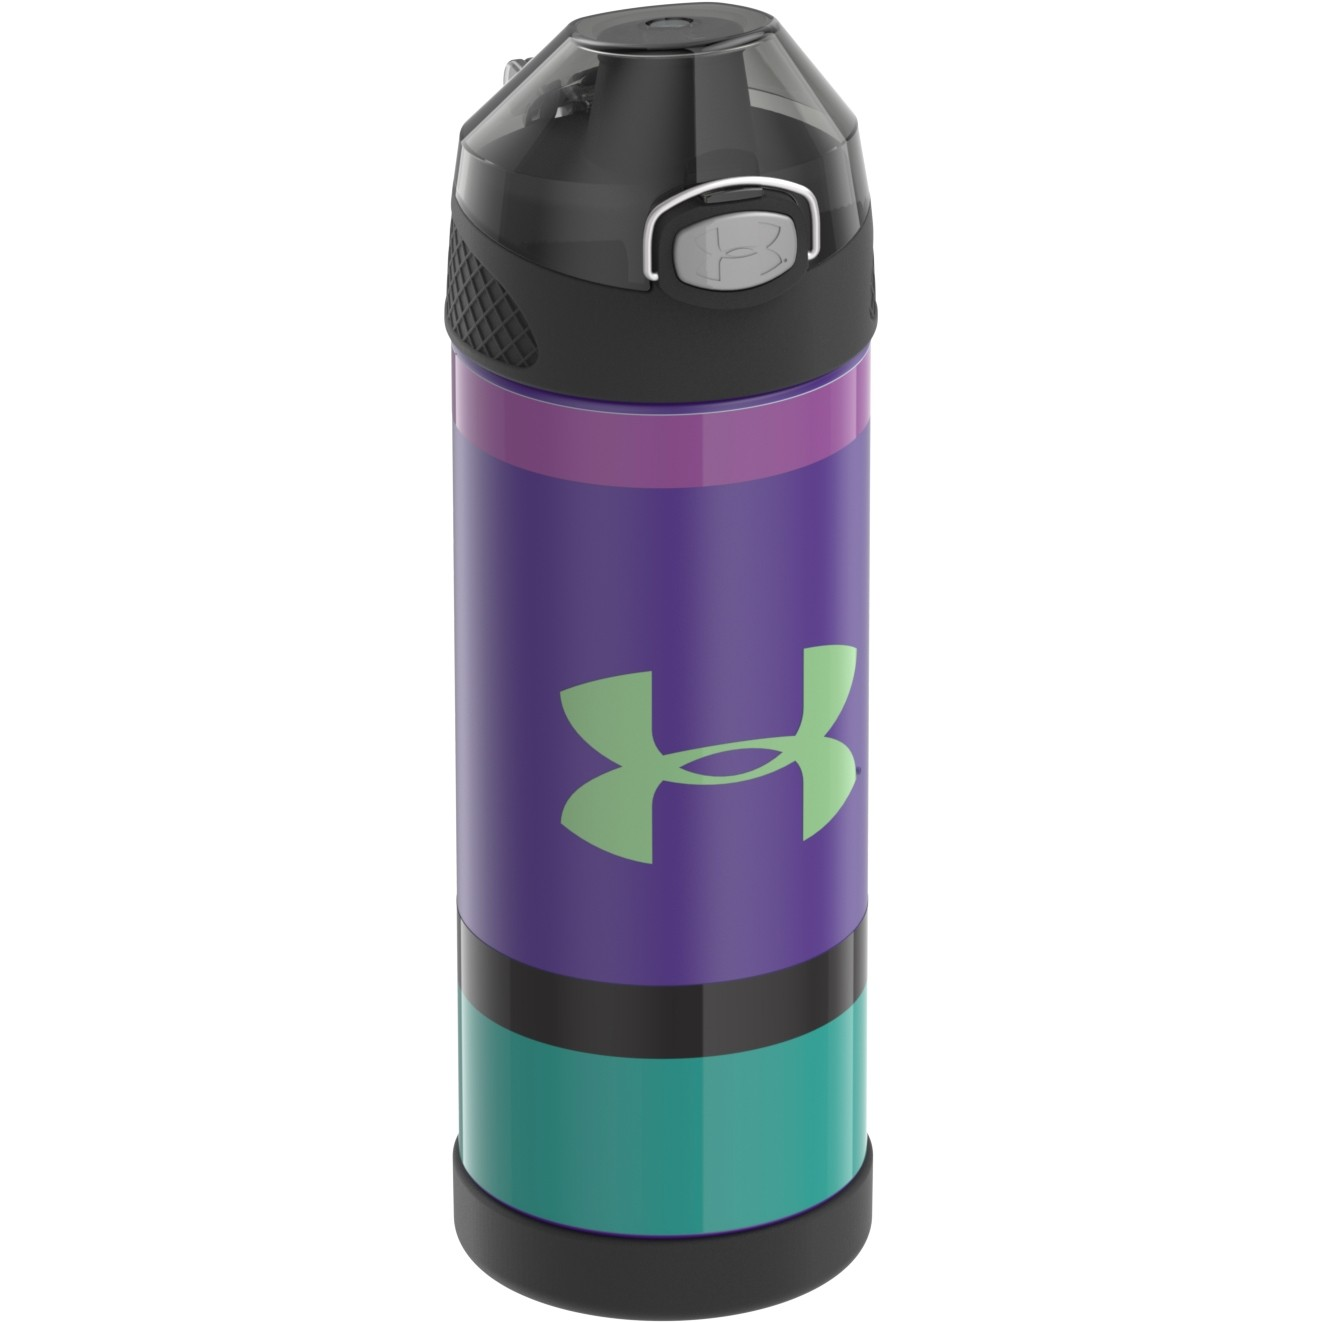 UA PROTEGE 16OZ STAINLESS STEEL WATER BOTTLE CONSTELLATION PURPLE